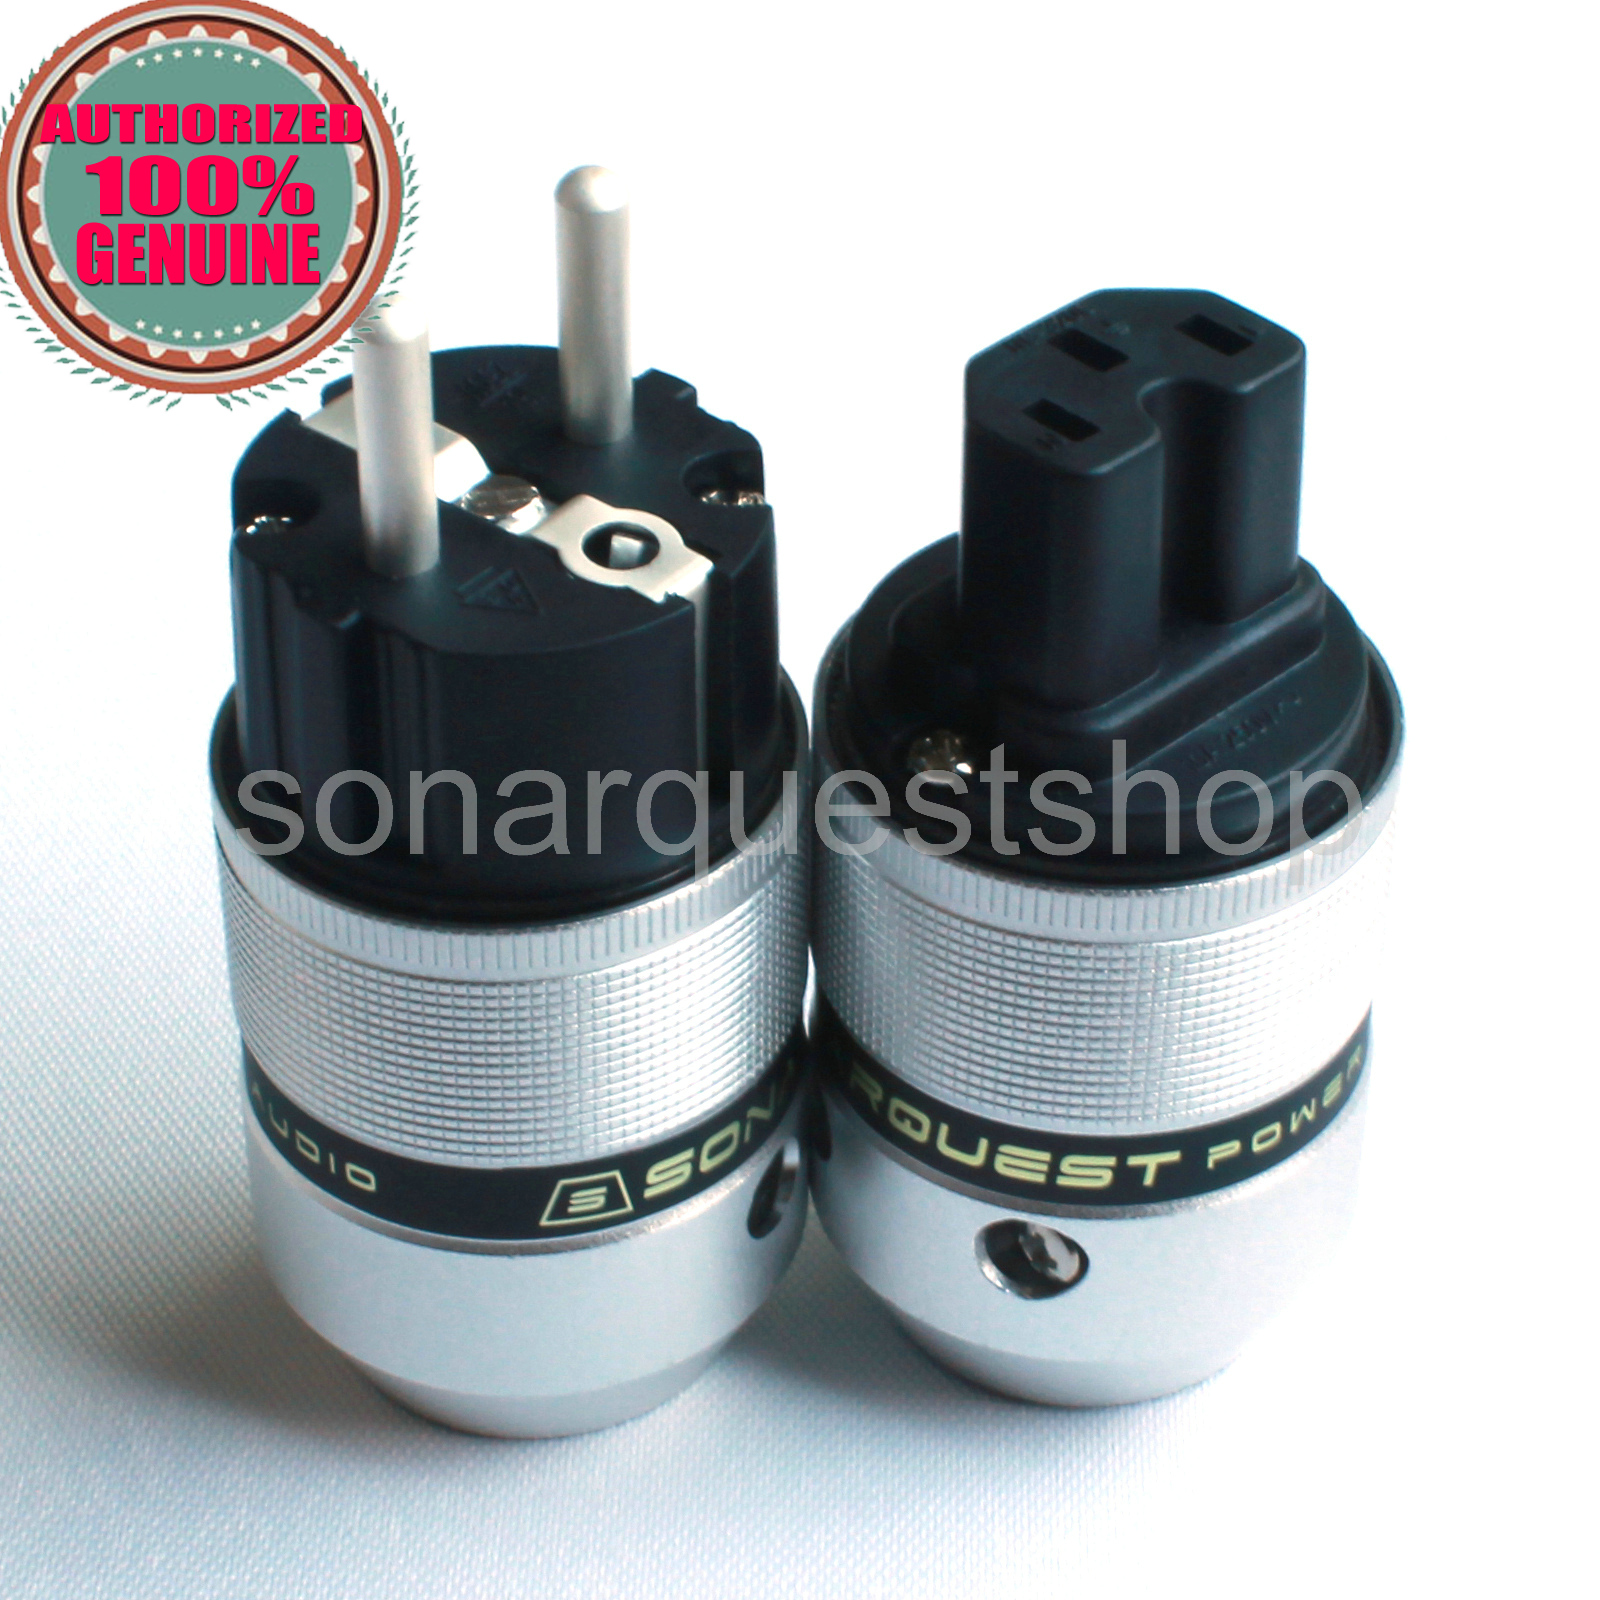 SONARQUEST E25 Ag(B) + C25 Ag(B) EU silver Plated UP Black Aluminum alloy Power Plug & IEC Connector